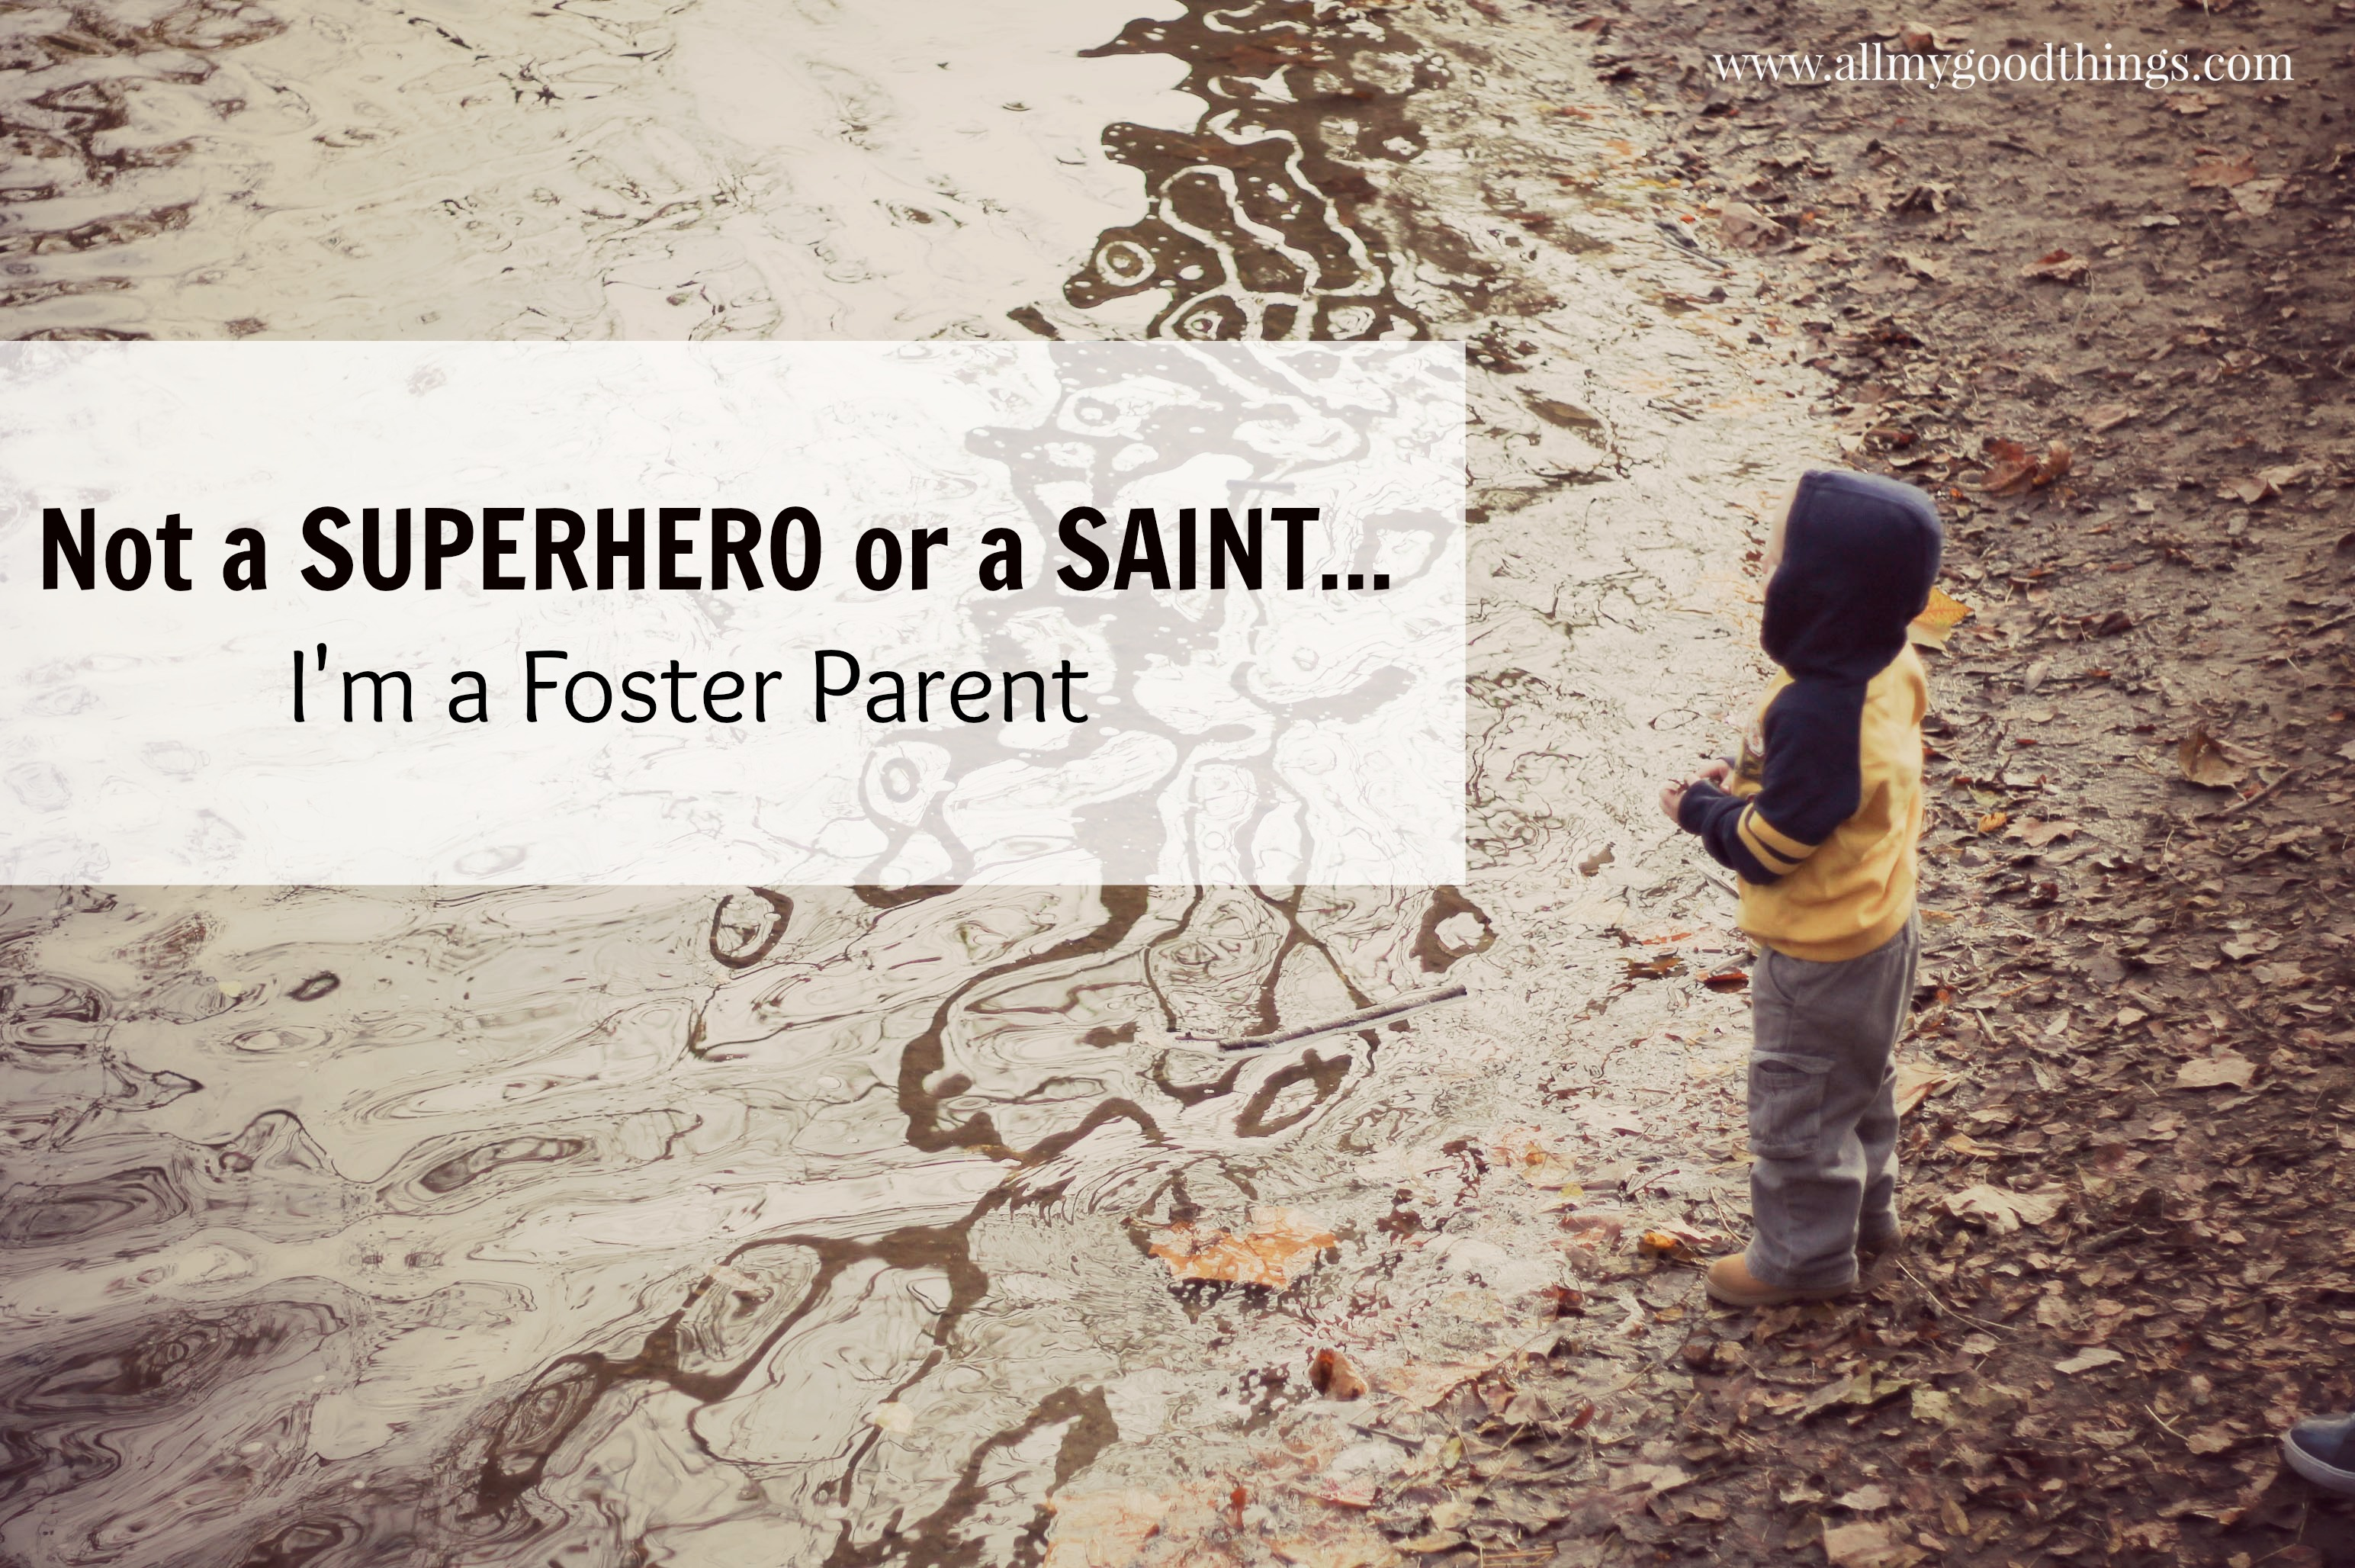 Not a Superhero or a Saint – I'm a Foster Parent